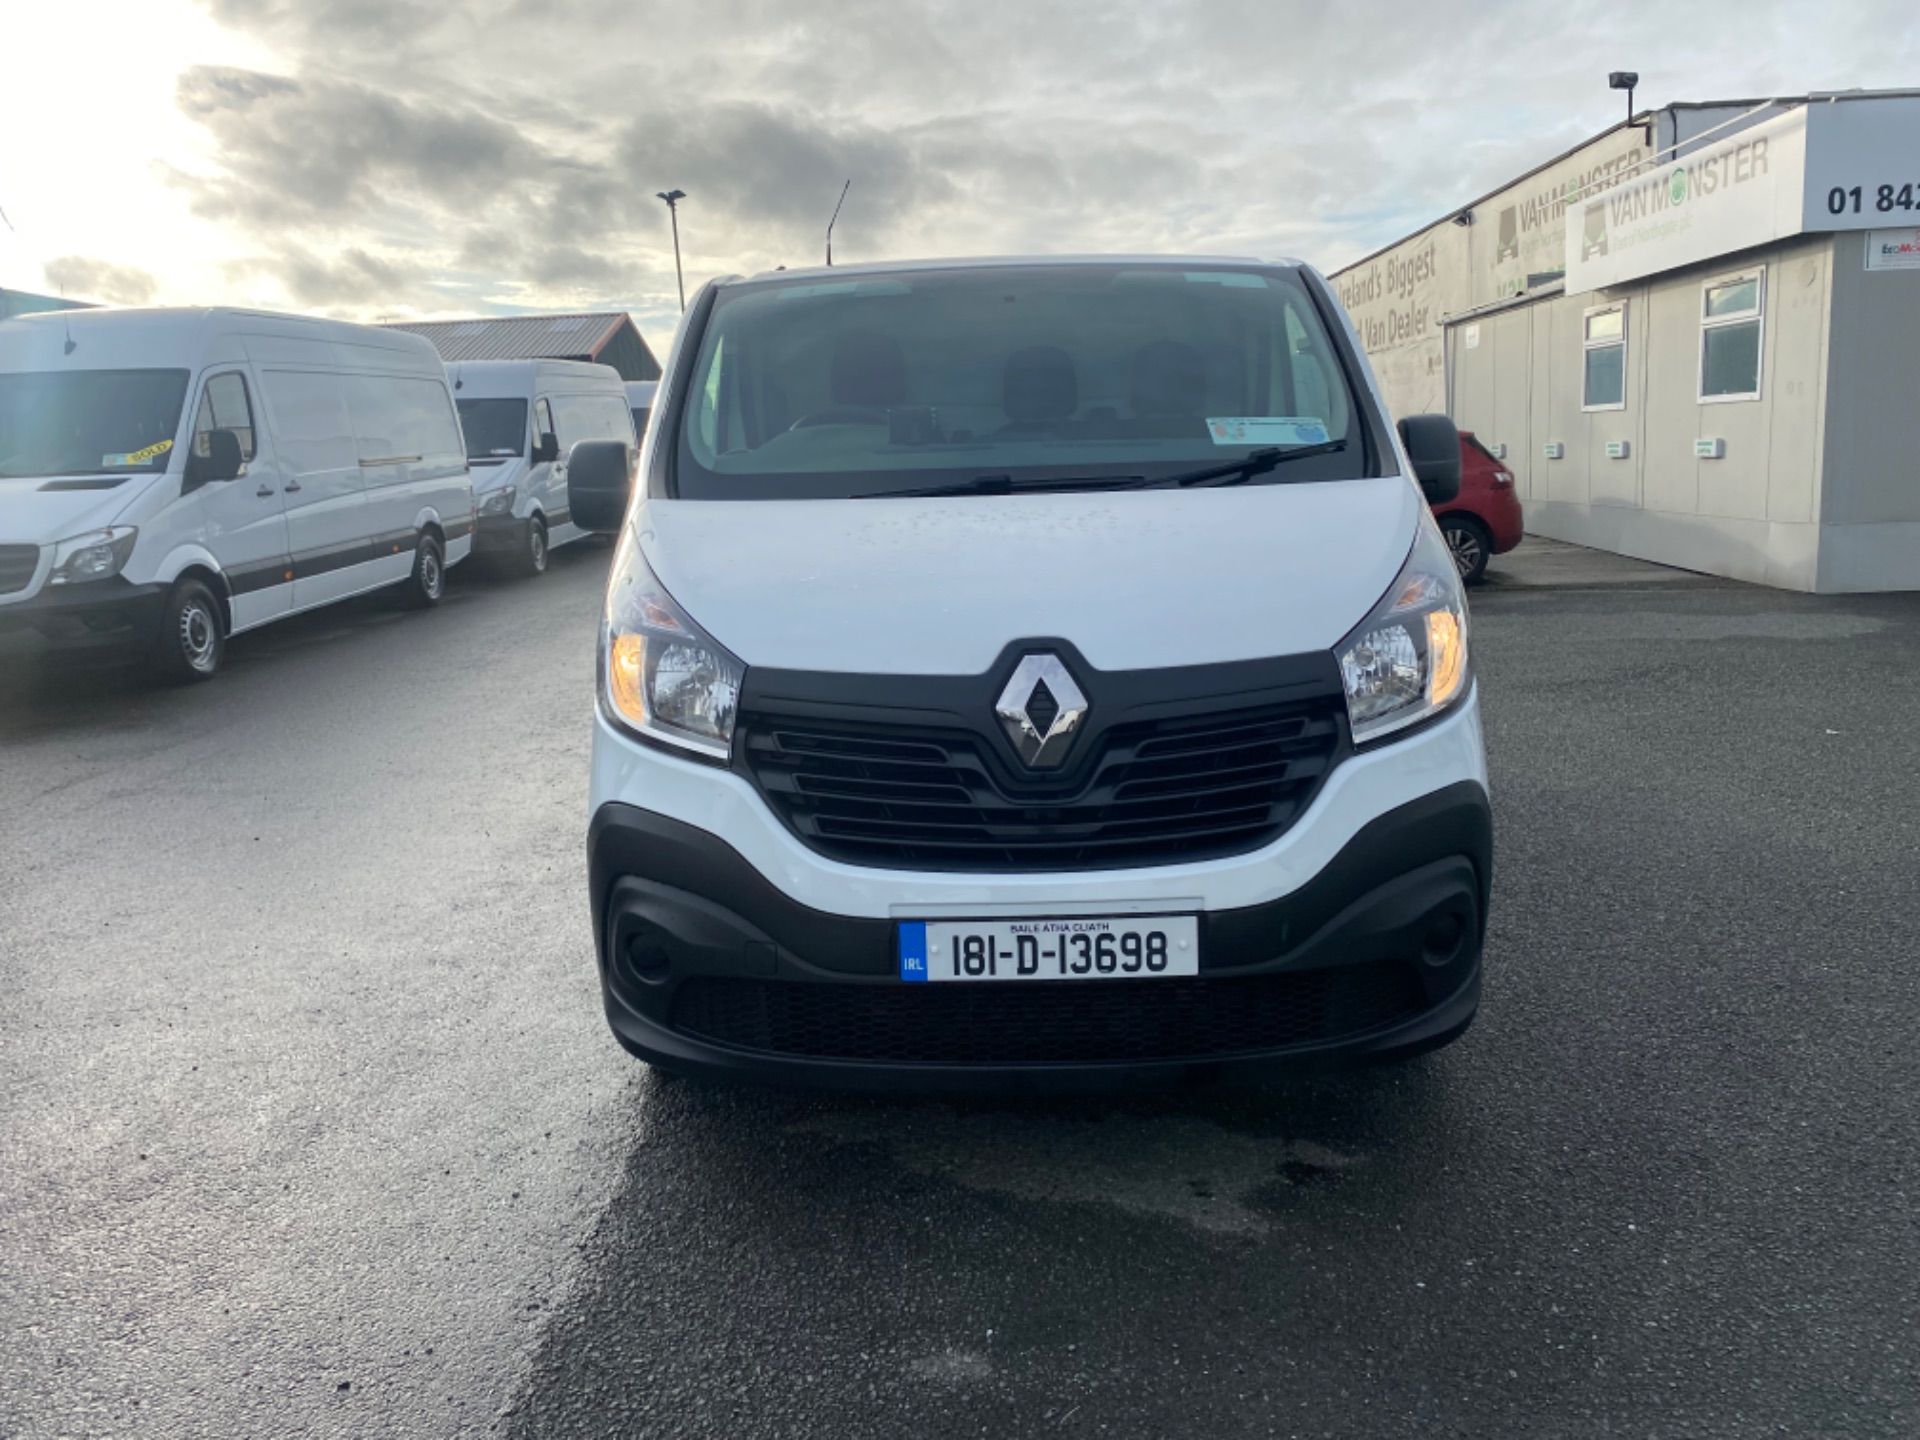 2018 Renault Trafic LL29 DCI 120 Business 3DR (181D13698) Image 2